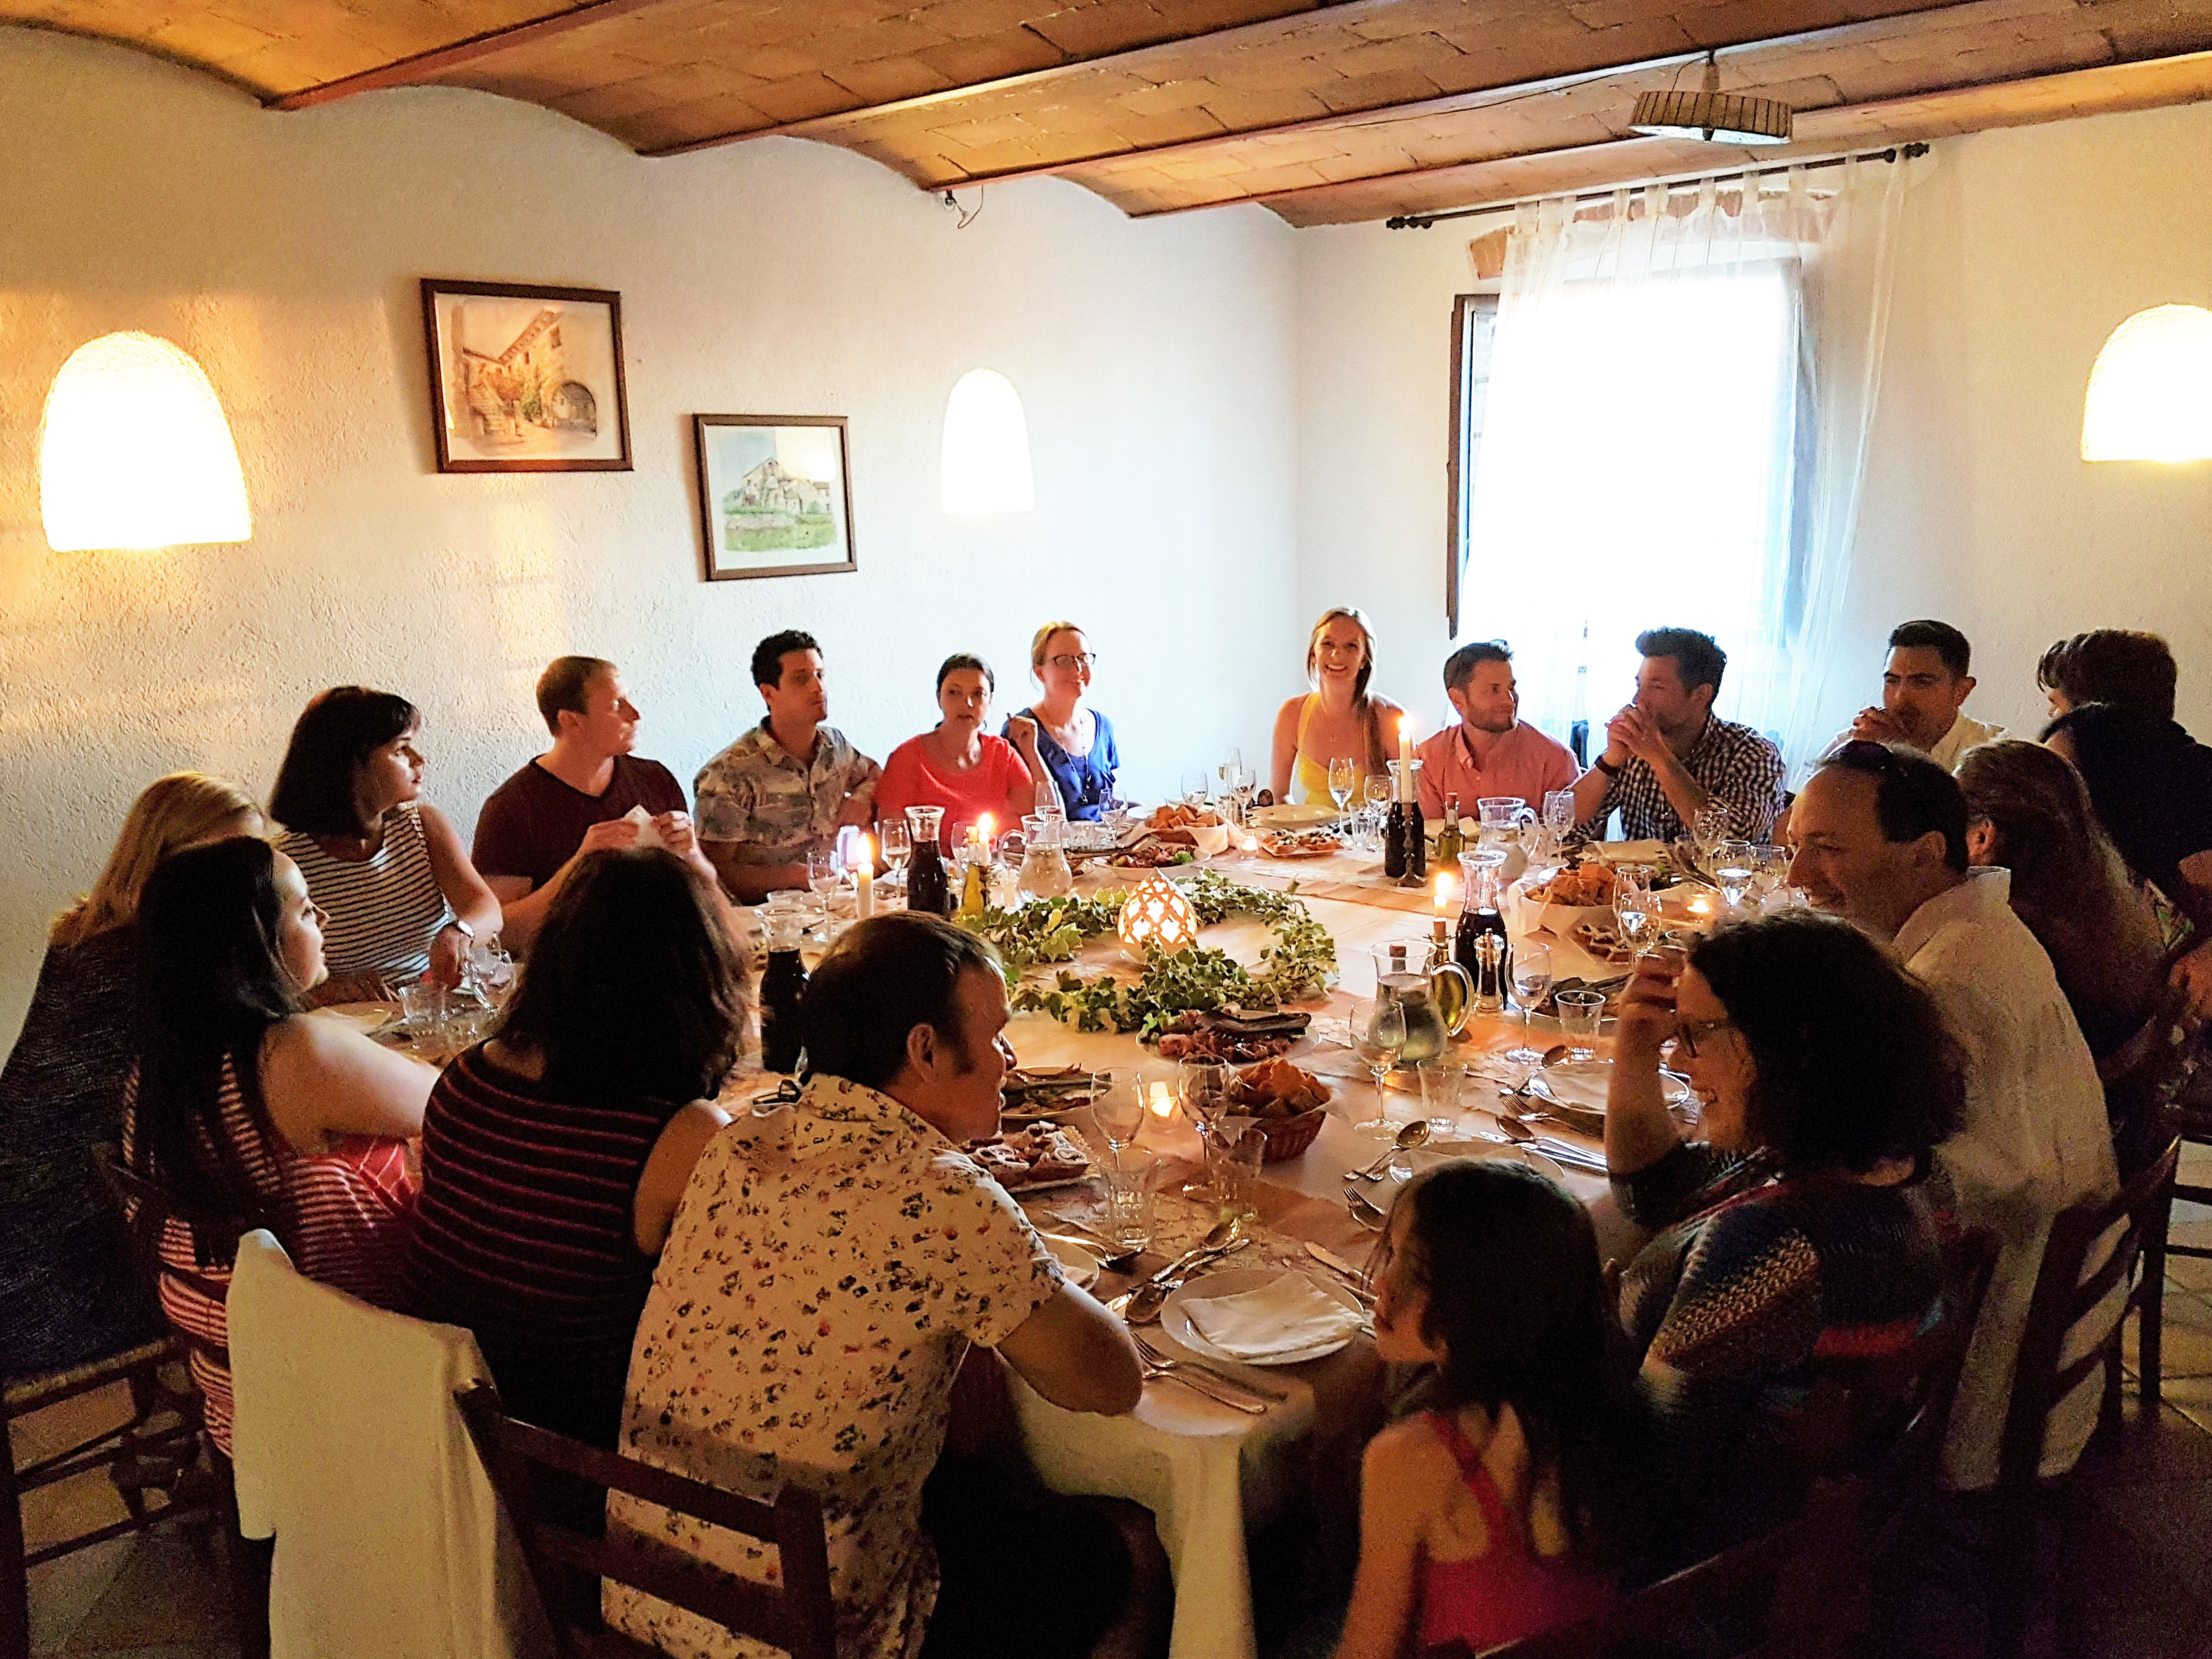 Guests at our agritusmo villa rental in Chianti having fun at our weekly Tuscan Banquet